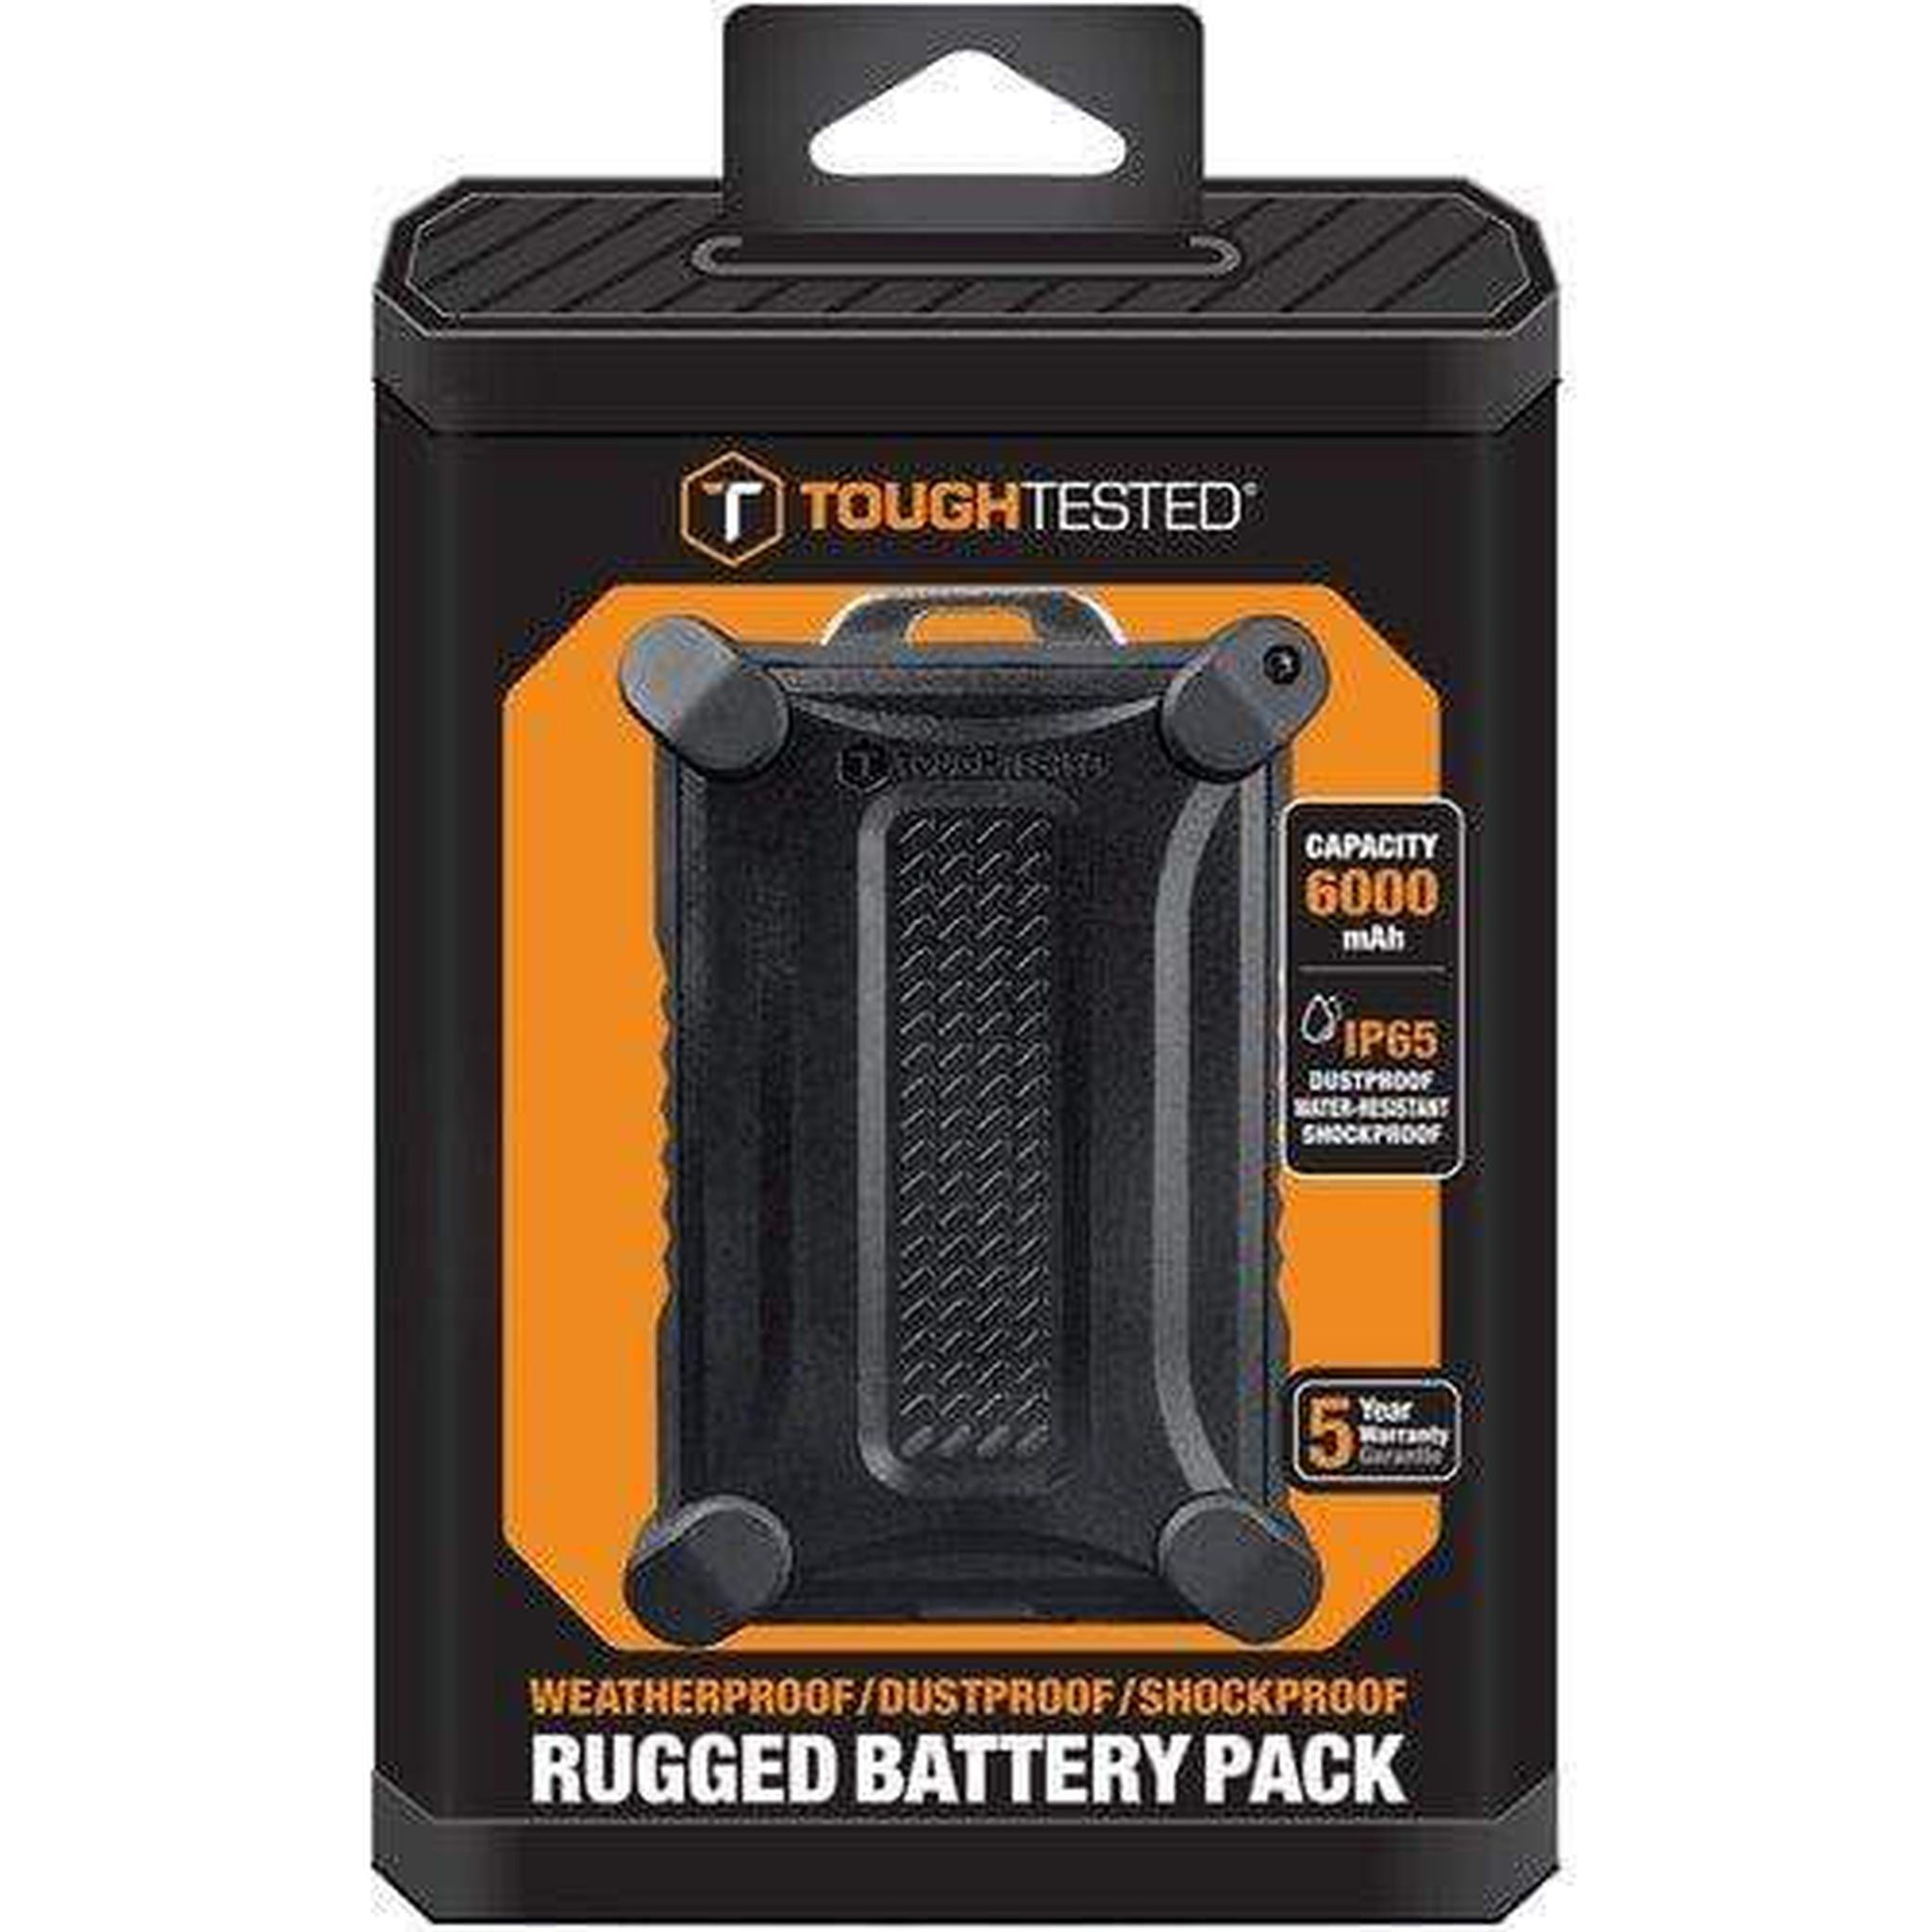 TOUGH TESTED 6000MAH POWERBANK RUGGED WATER RESISTANT IP65 - Choice Computer Technologies